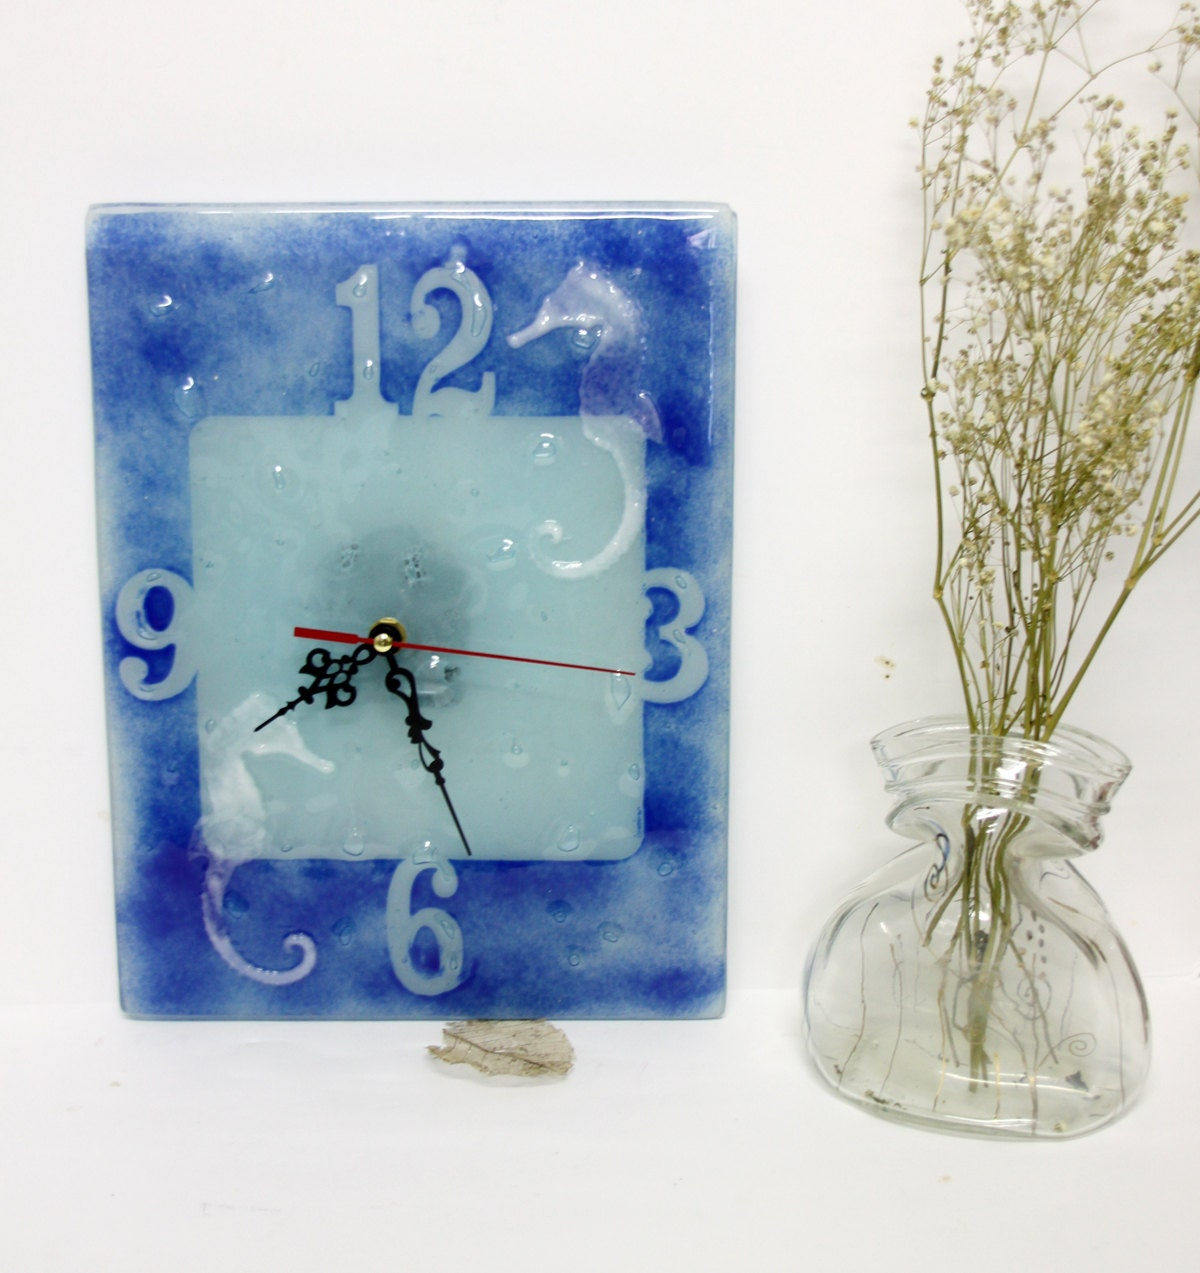 fused glass seahorse wall clock blue tons painted clock